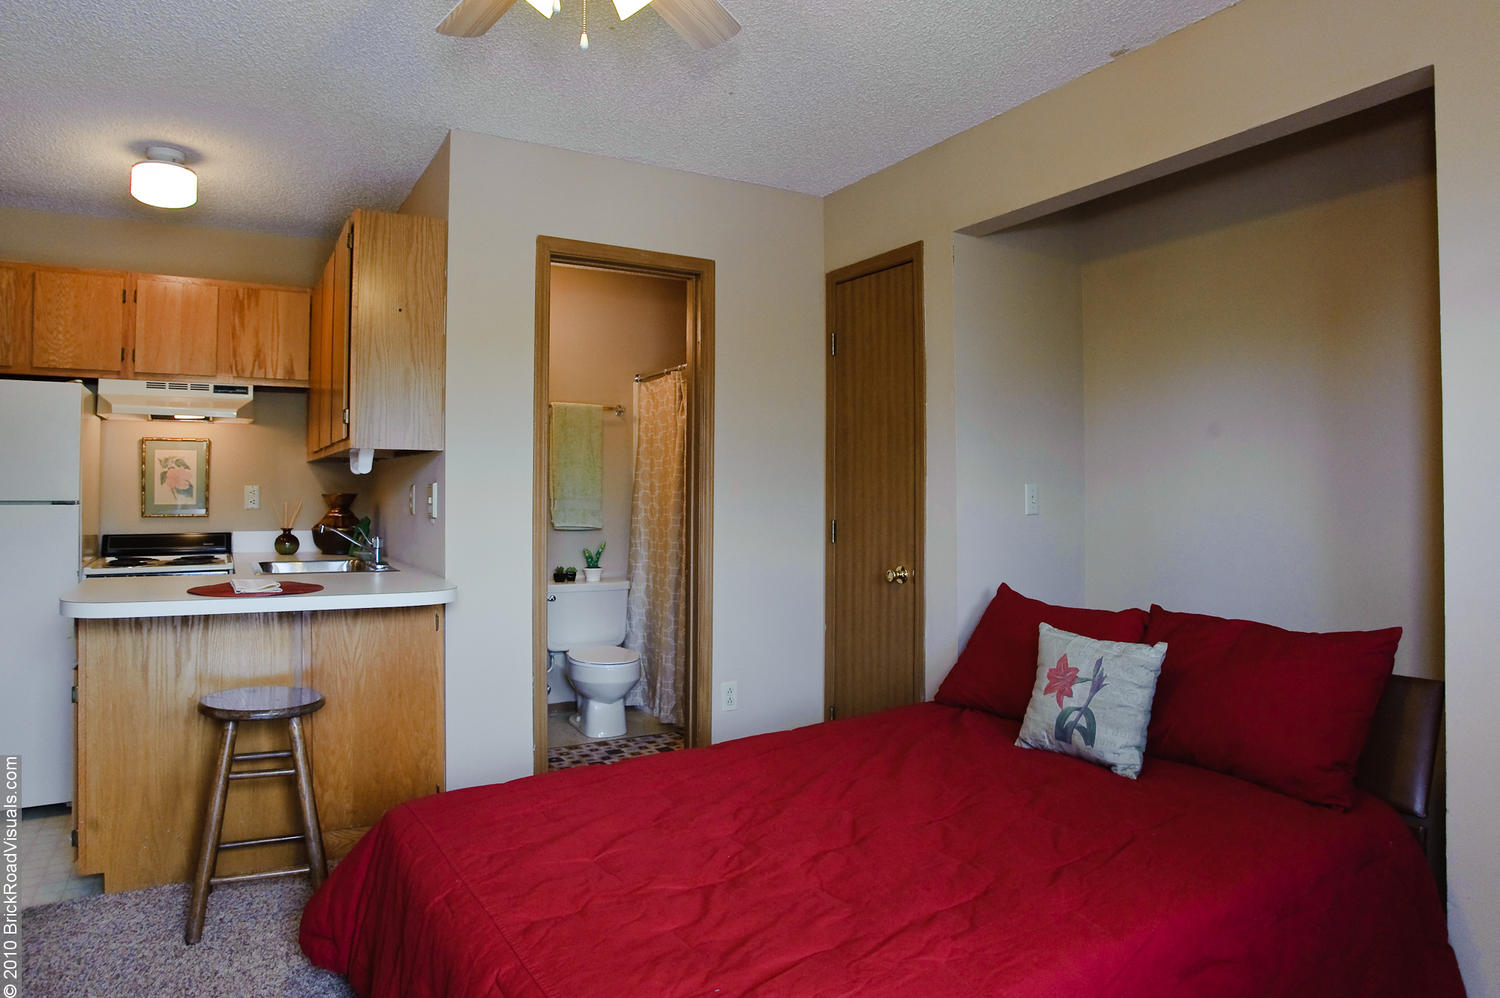 campus studio apartments - pierce properties nwa